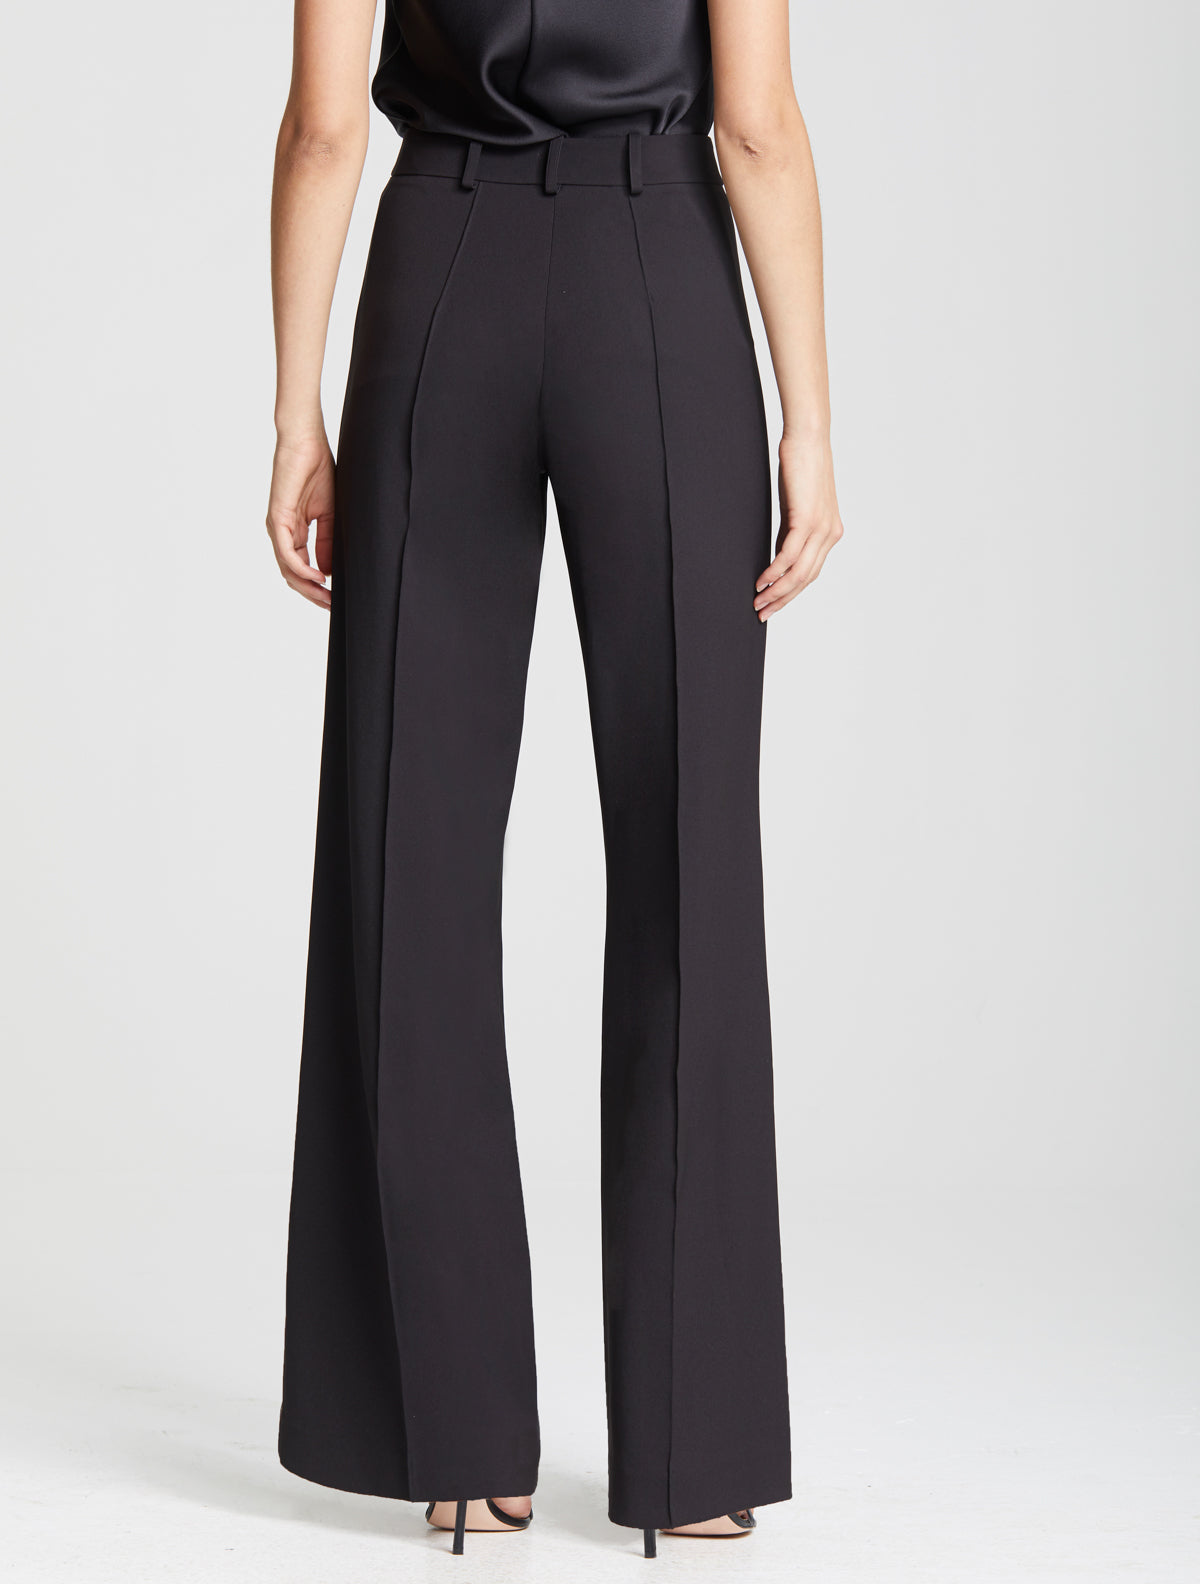 Crepe Suiting Pant - Halston